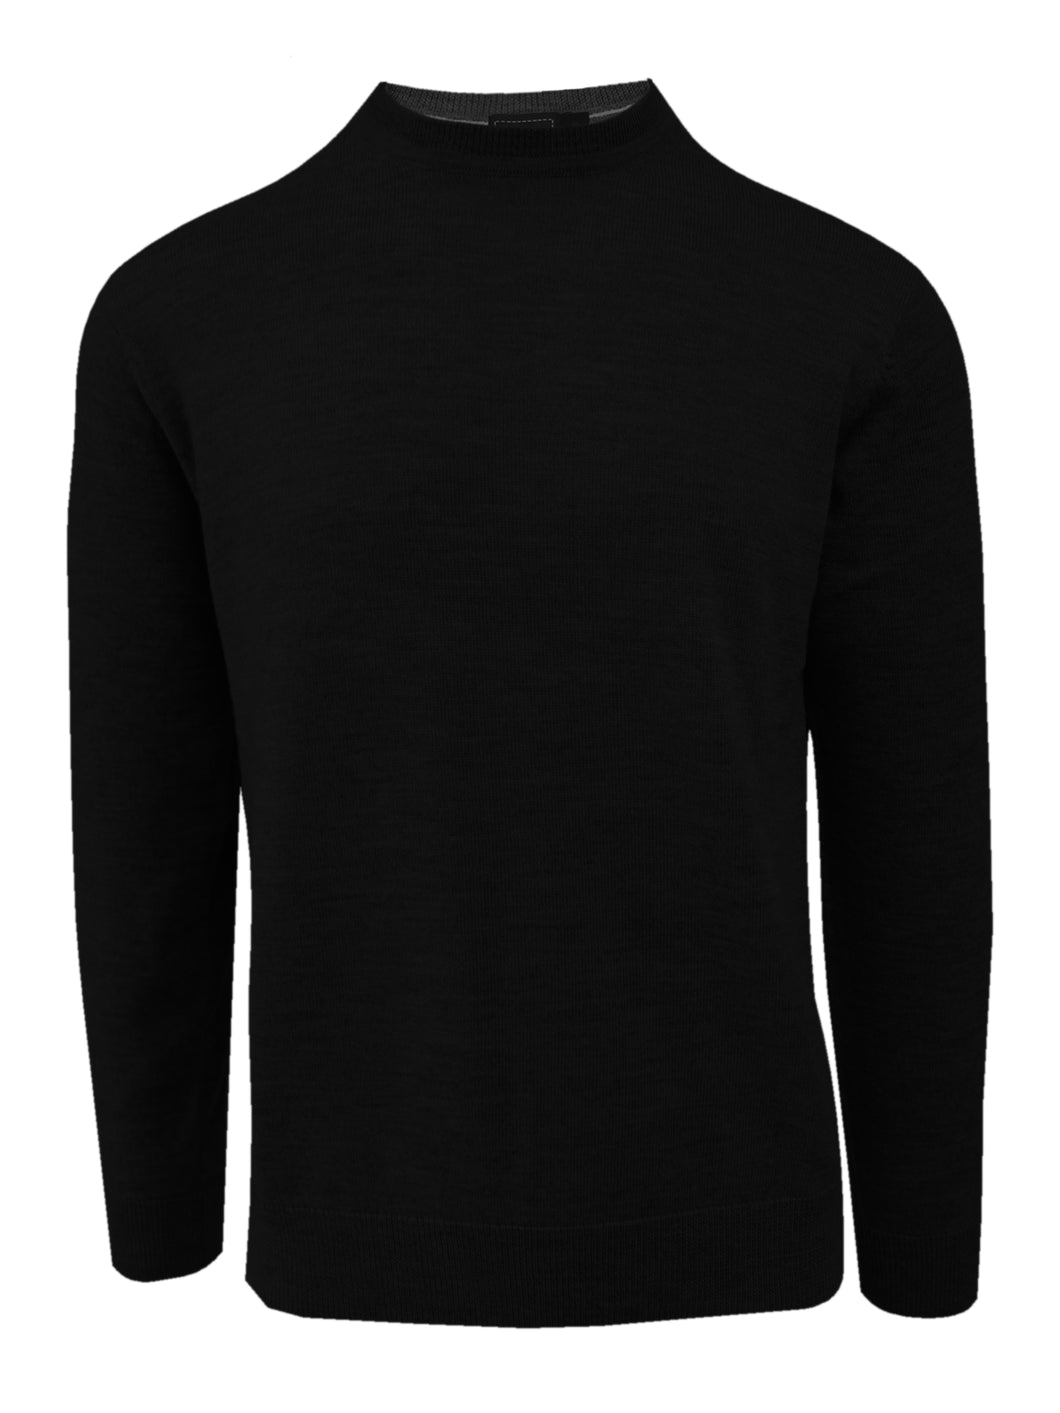 Black Merino Wool Crew Neck Sweater